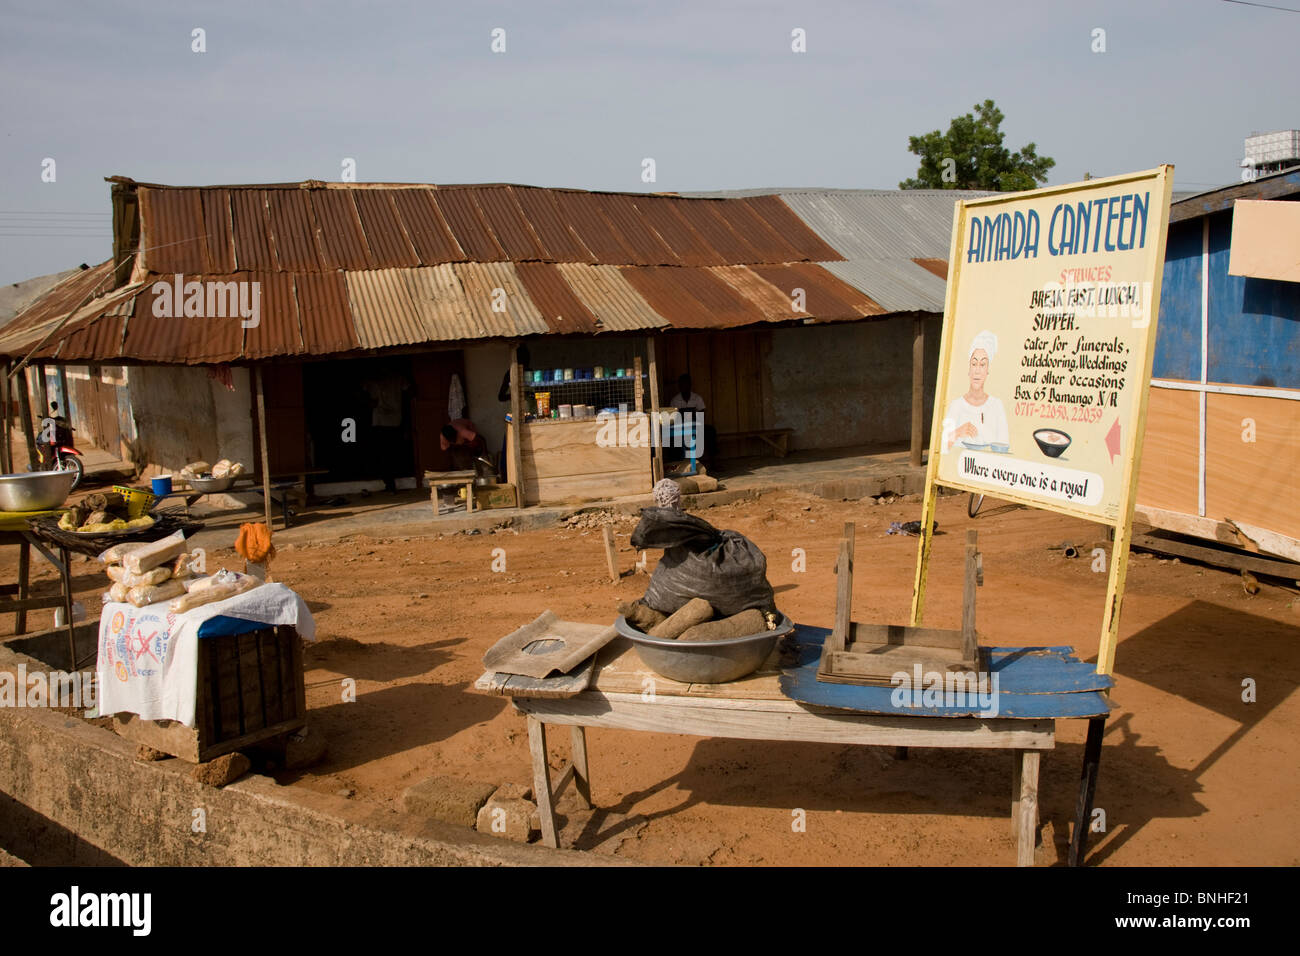 The only restaurant in Damango, northwest Ghana. Stock Photo